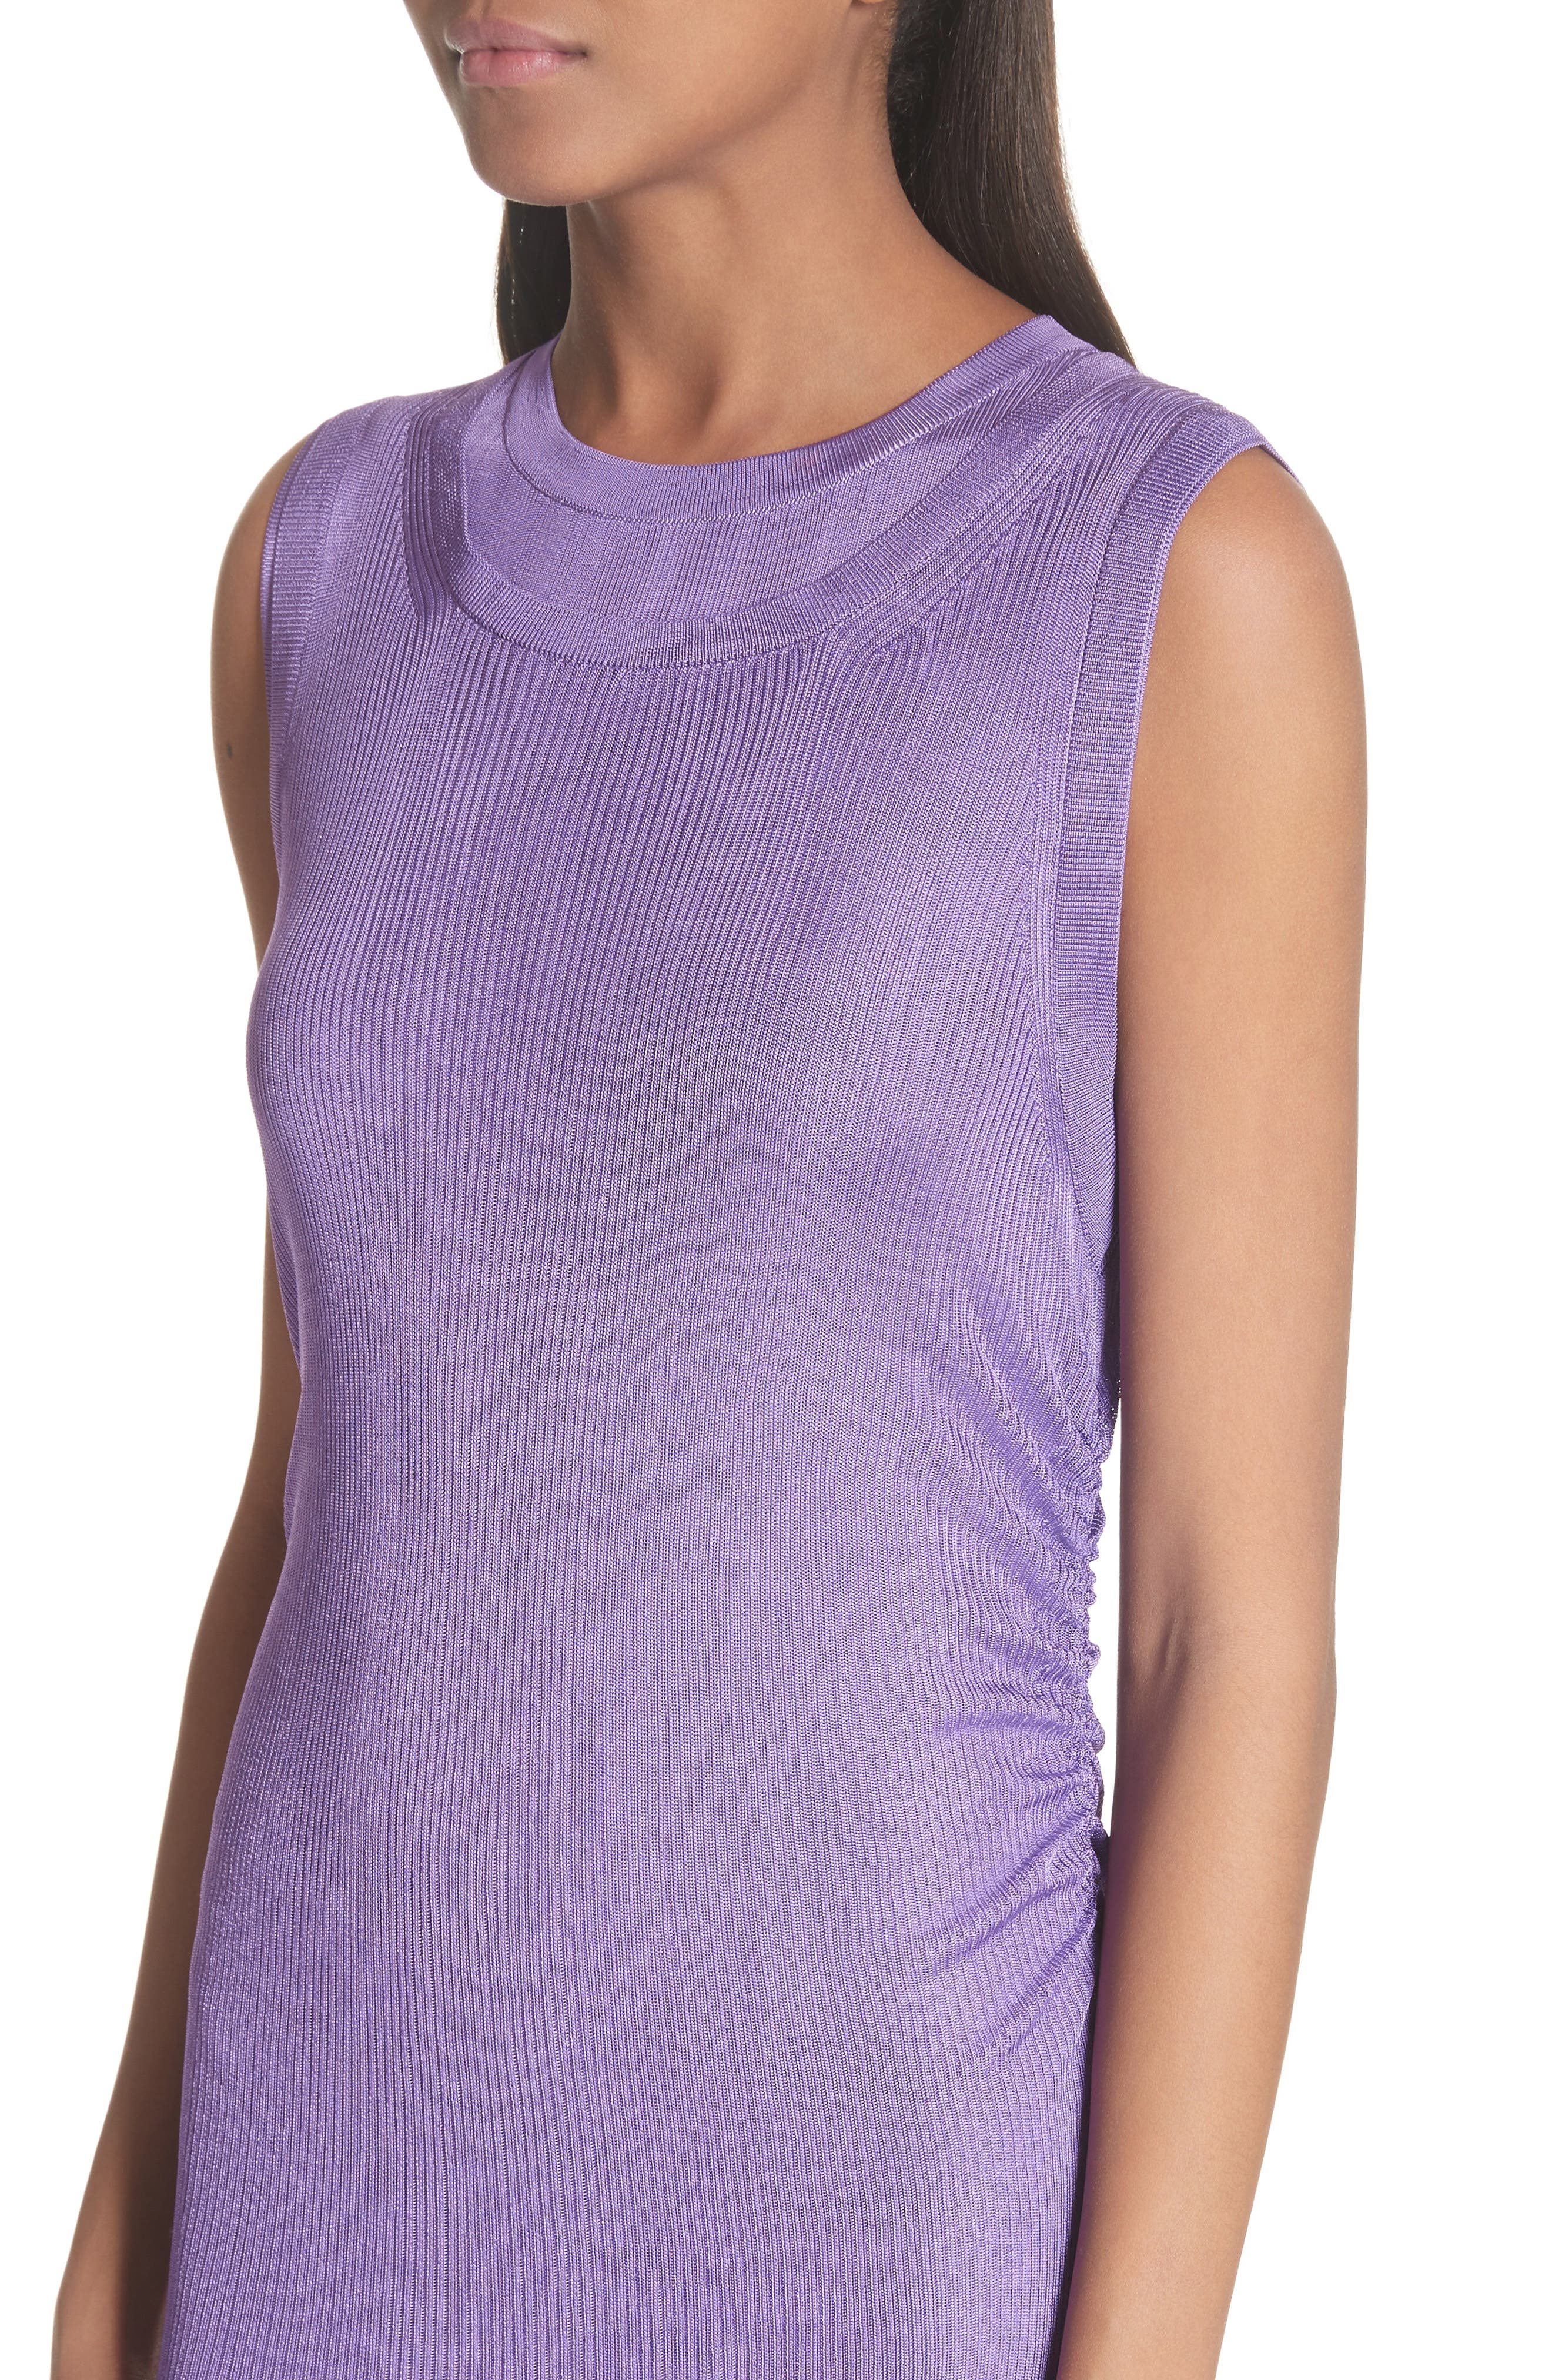 Ruched Side Layered Rib Knit Dress,                             Alternate thumbnail 4, color,                             500